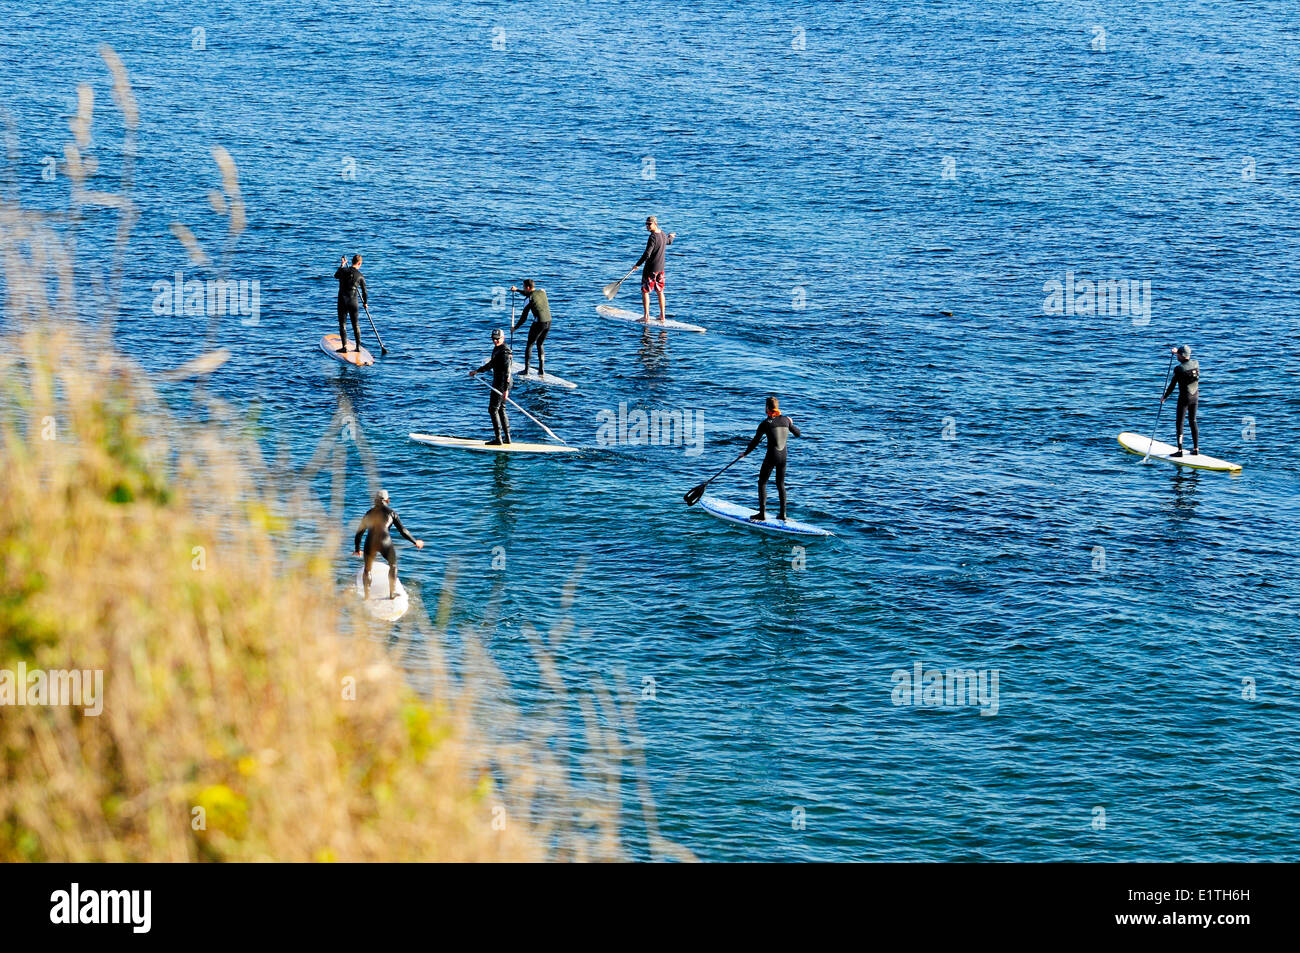 Sept gars utiliser stand up paddleboards à faire leur chemin au bord de l'eau près de Dallas Road, à Victoria, en Colombie-Britannique. Photo Stock